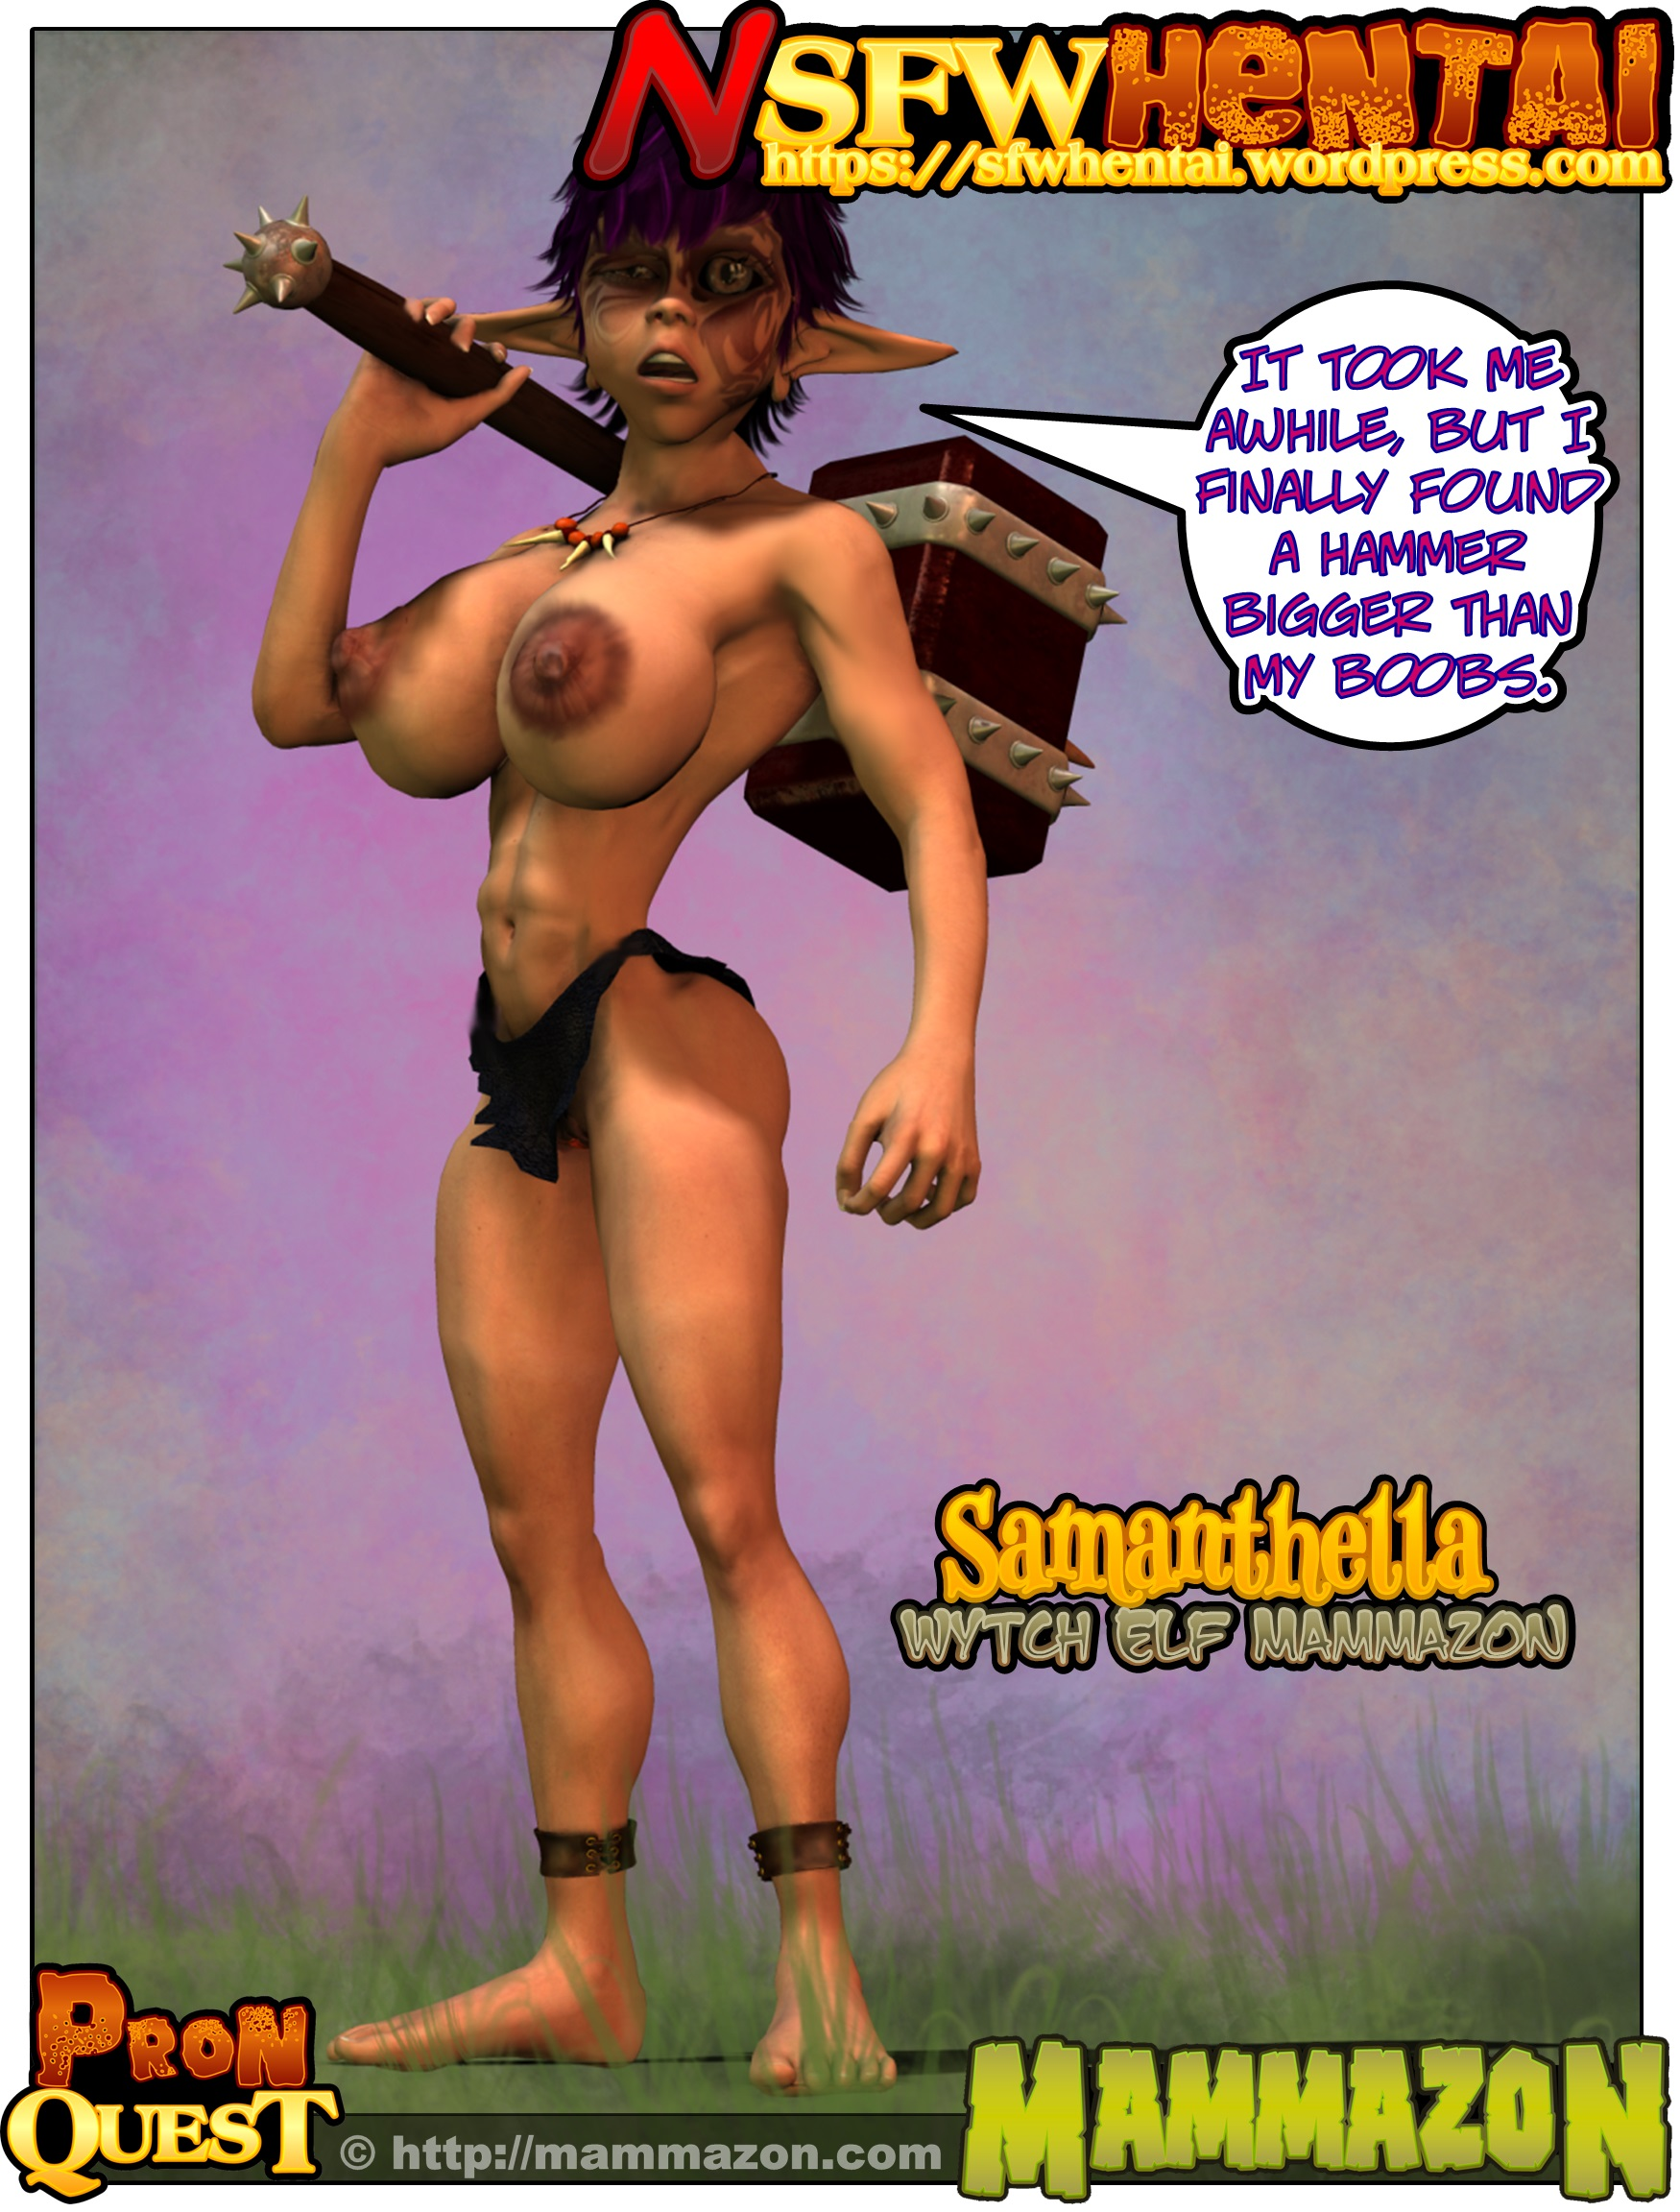 NSFW Big Tits Witch Elf Samanthella in Warhammer Fantasy Battles Parody Mammazon.